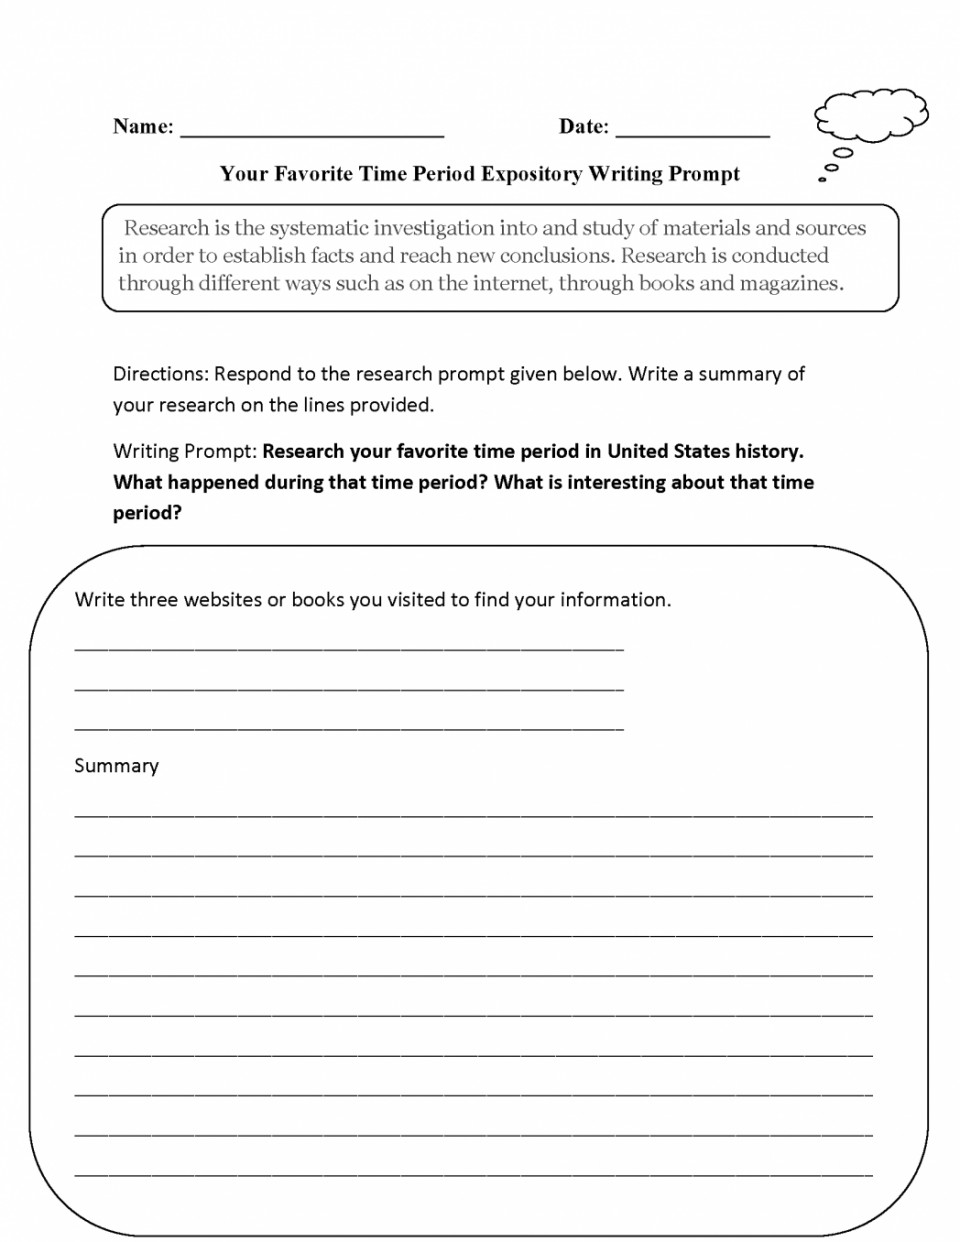 018 Essay Example Good Informative Topics Prompts Favorite Time Period Expository Writing P To Write An On The Topic Of Immigration Remarkable For Secondary School 4th Grade 5th 960